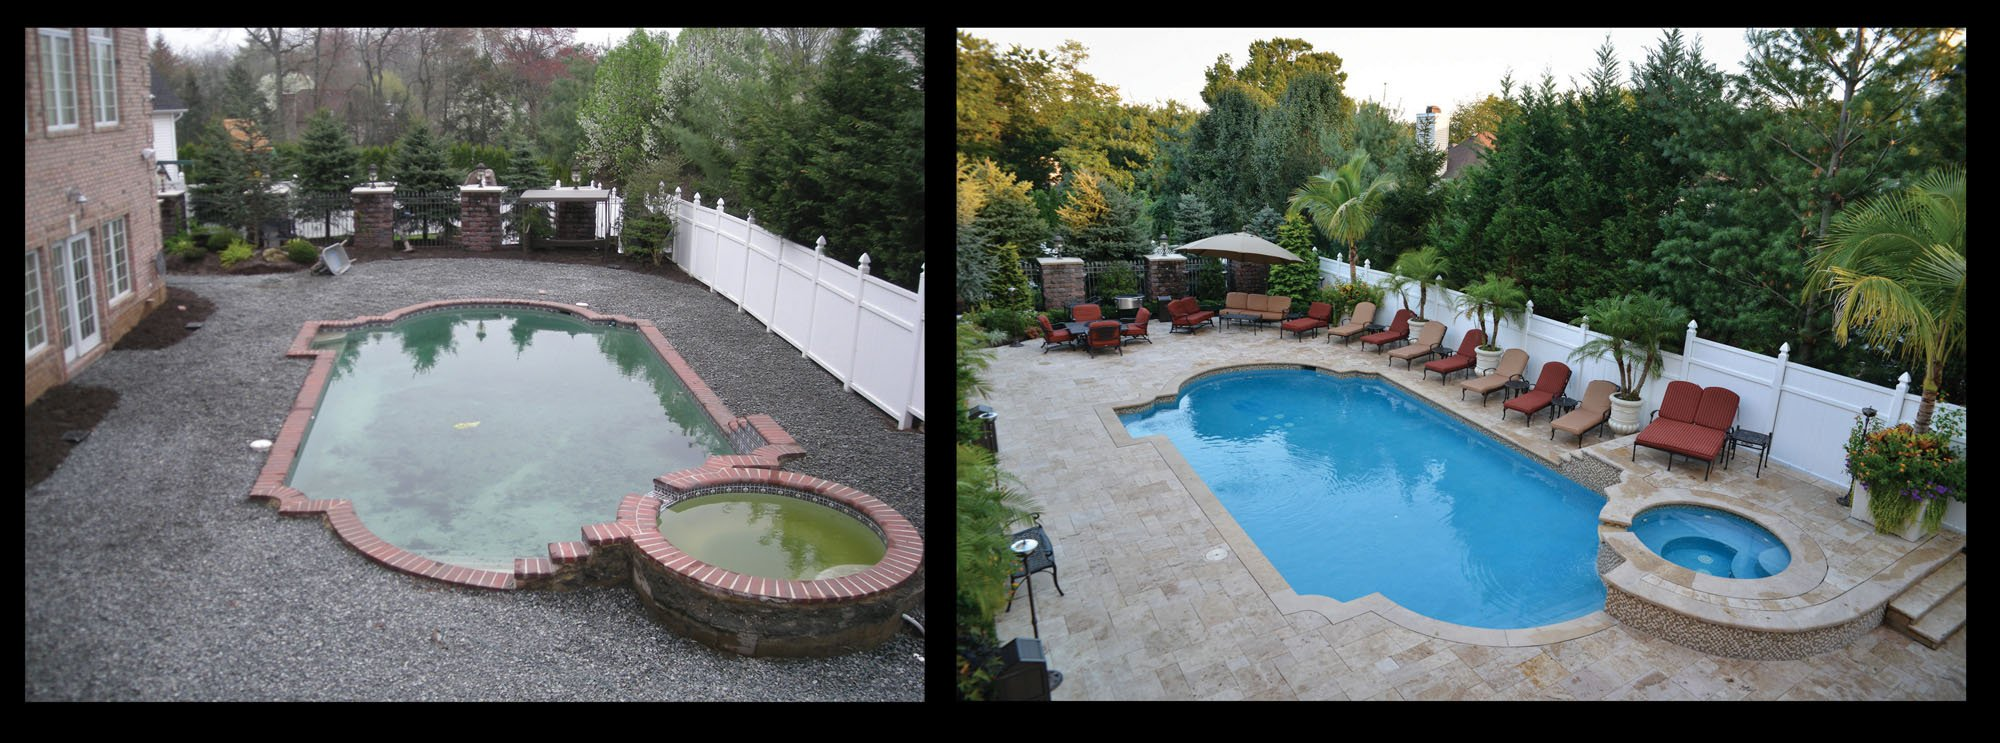 Before & After Pool Photos